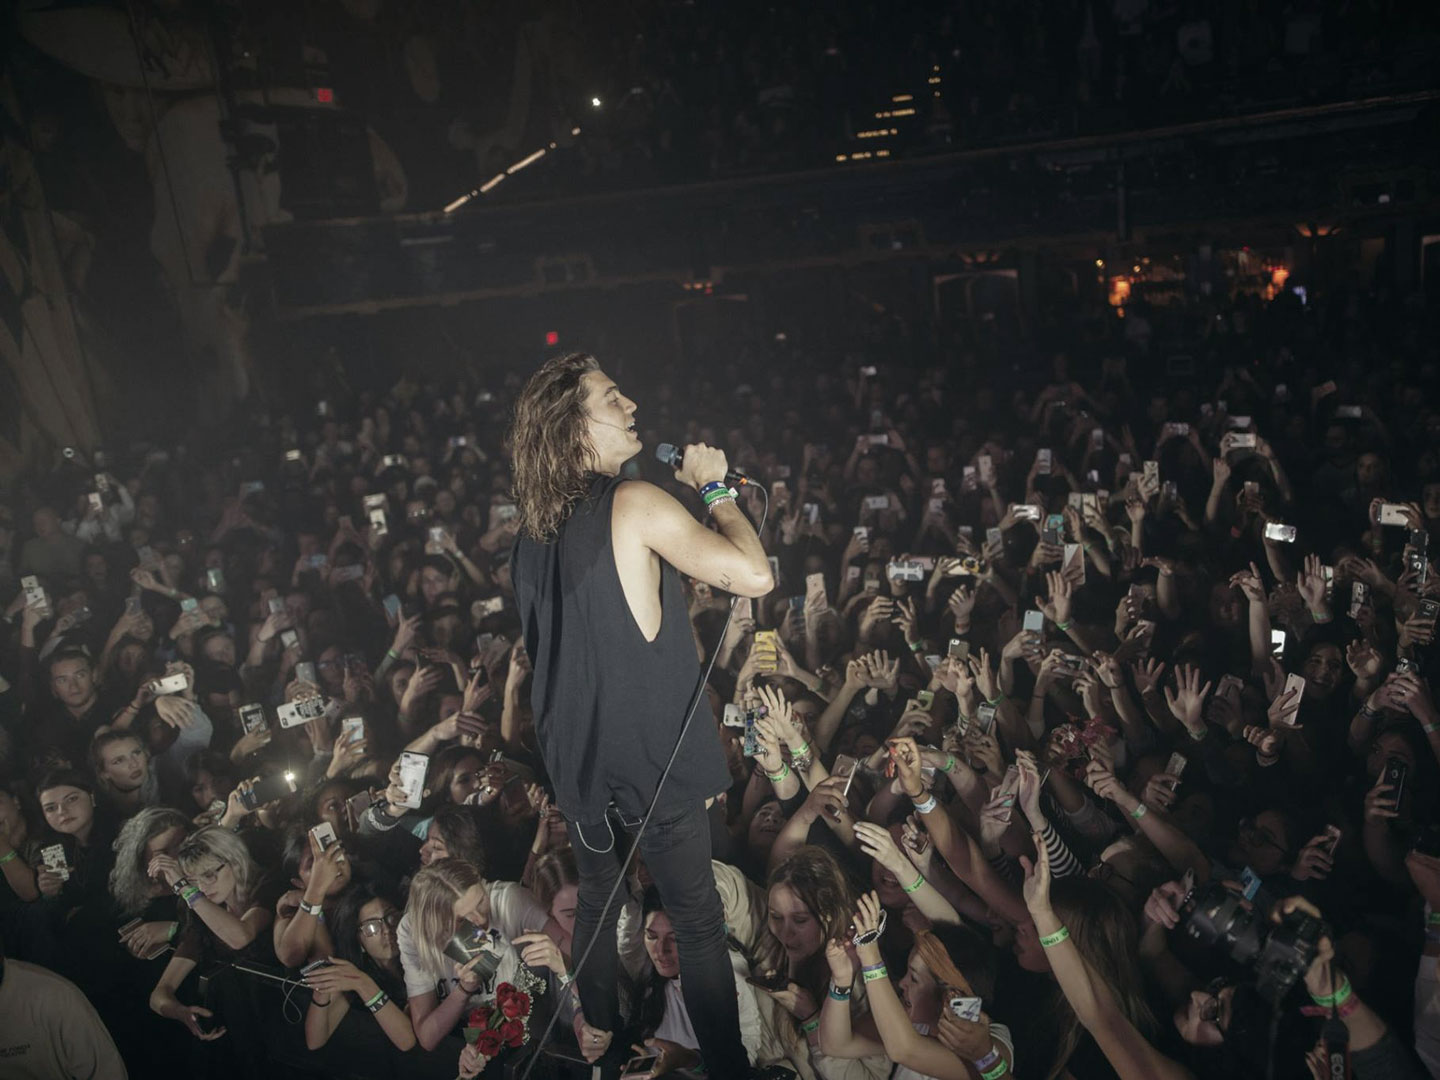 LANY performing live